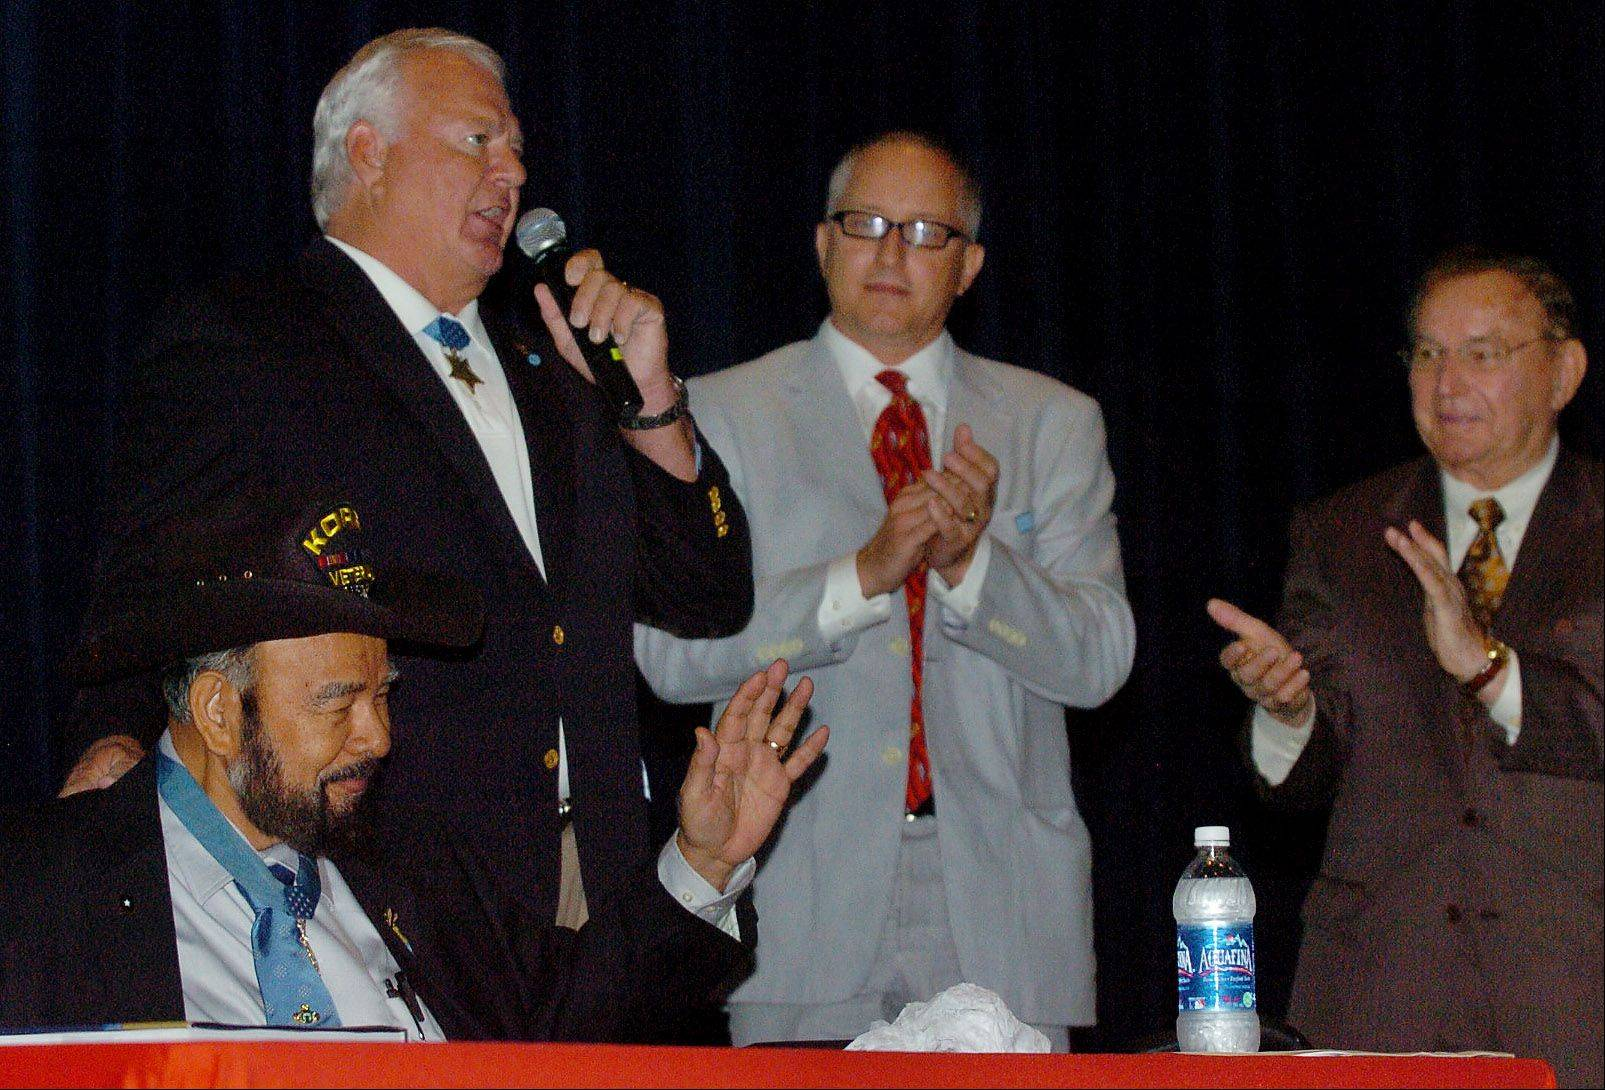 Former U.S. Army Cpl. Rodolfo Hernandez, seated, and former Navy Petty Officer Michael Thornton, with microphone, acknowledge the applause. On the right are Chip Borkowski, Medal of Honor committee volunteer and Richard L. Duchossois, of Arlington Park racetrack.